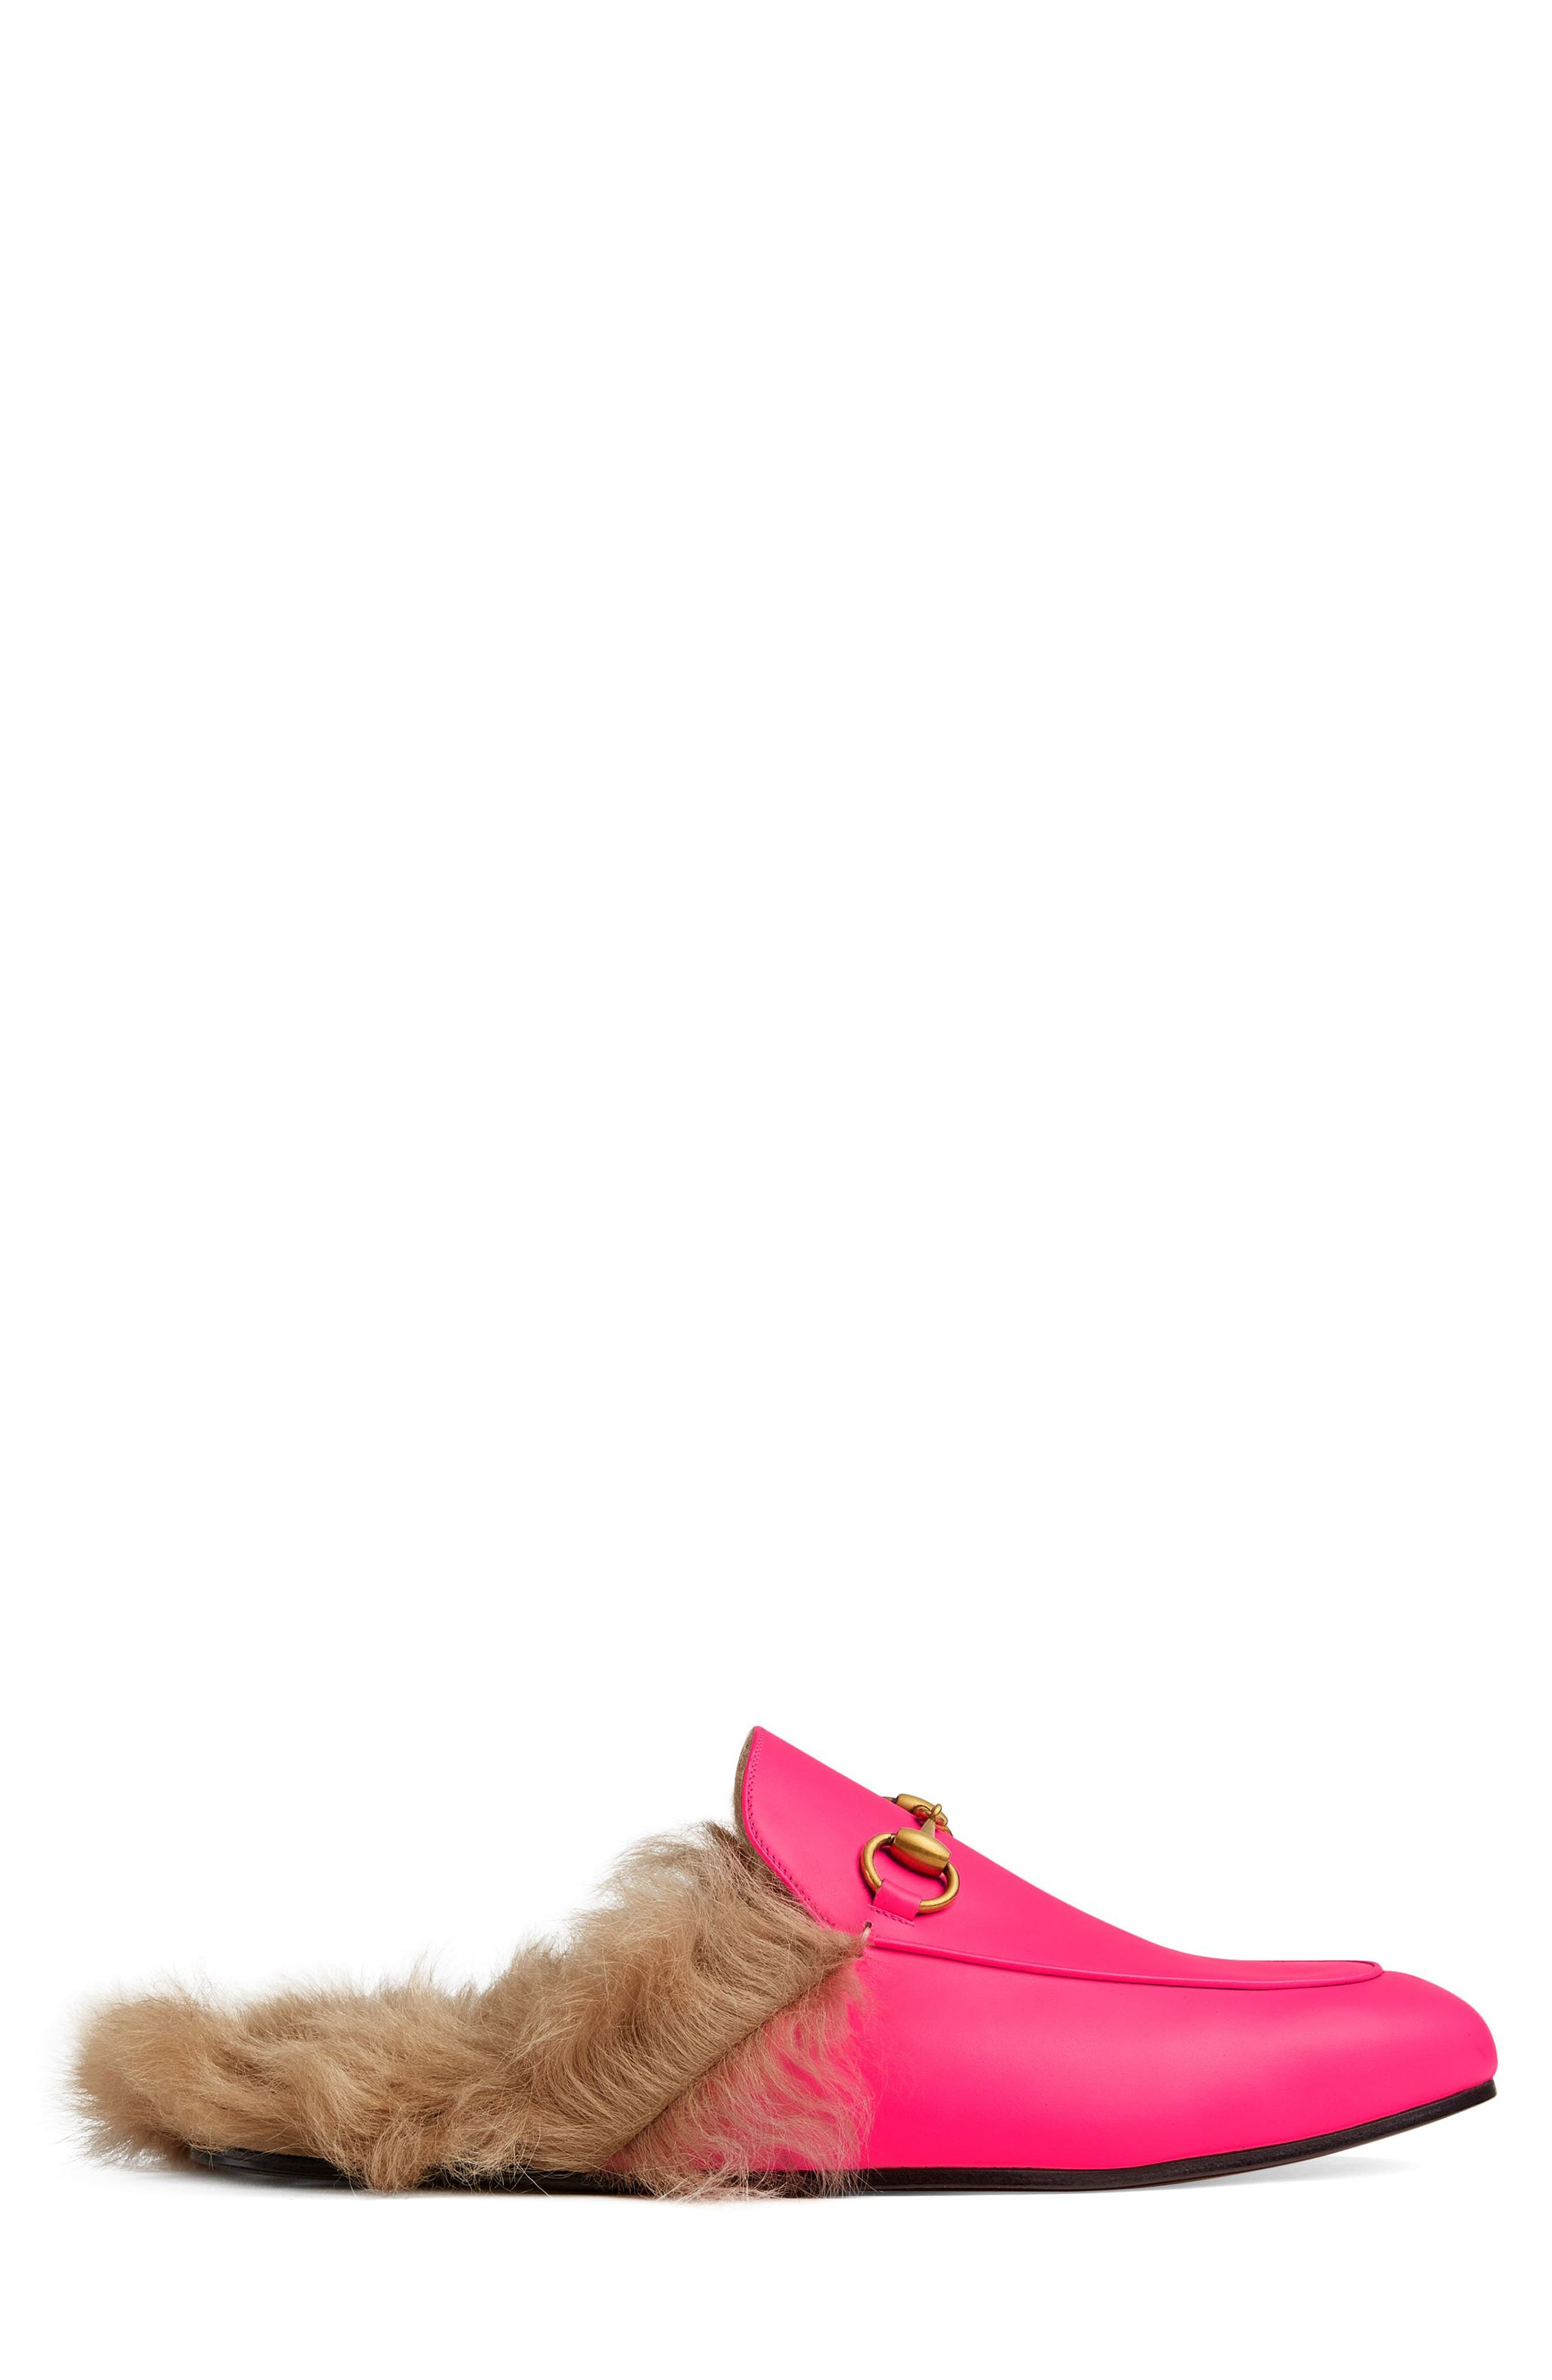 GUCCI, Princetown Genuine Shearling Lined Mule Loafer, Alternate thumbnail 2, color, PINK/ PINK